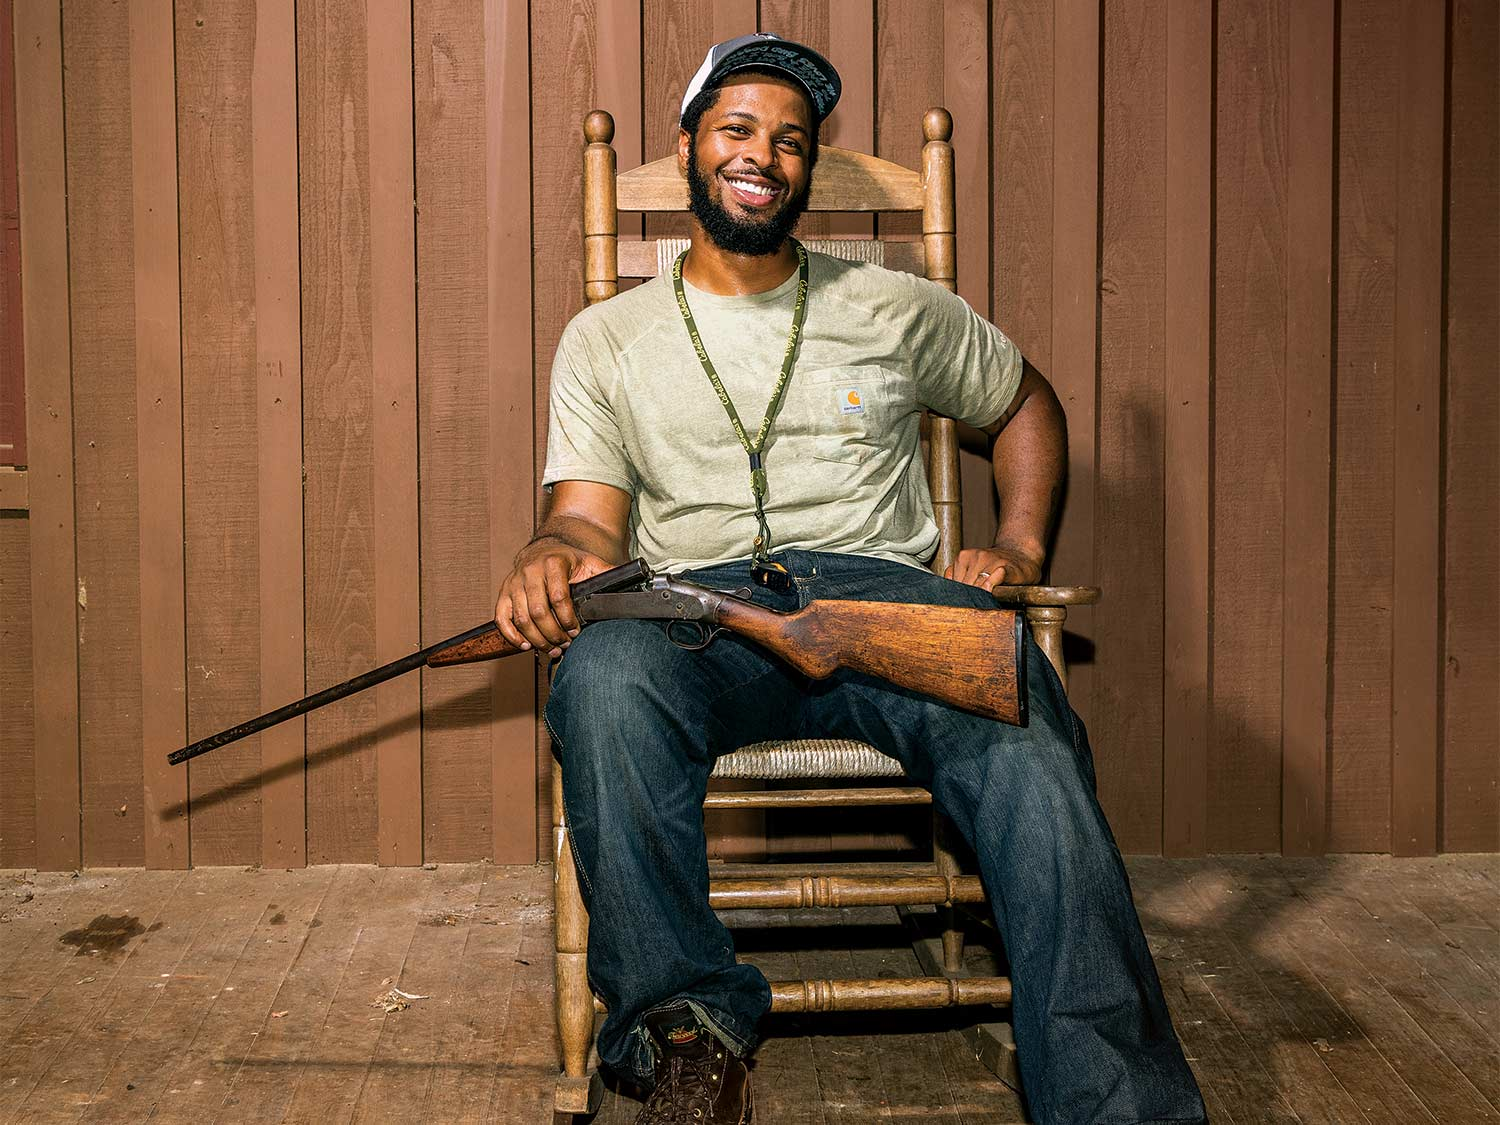 A hunter sits in a rocking chair, smiling, with a gun in his lap.